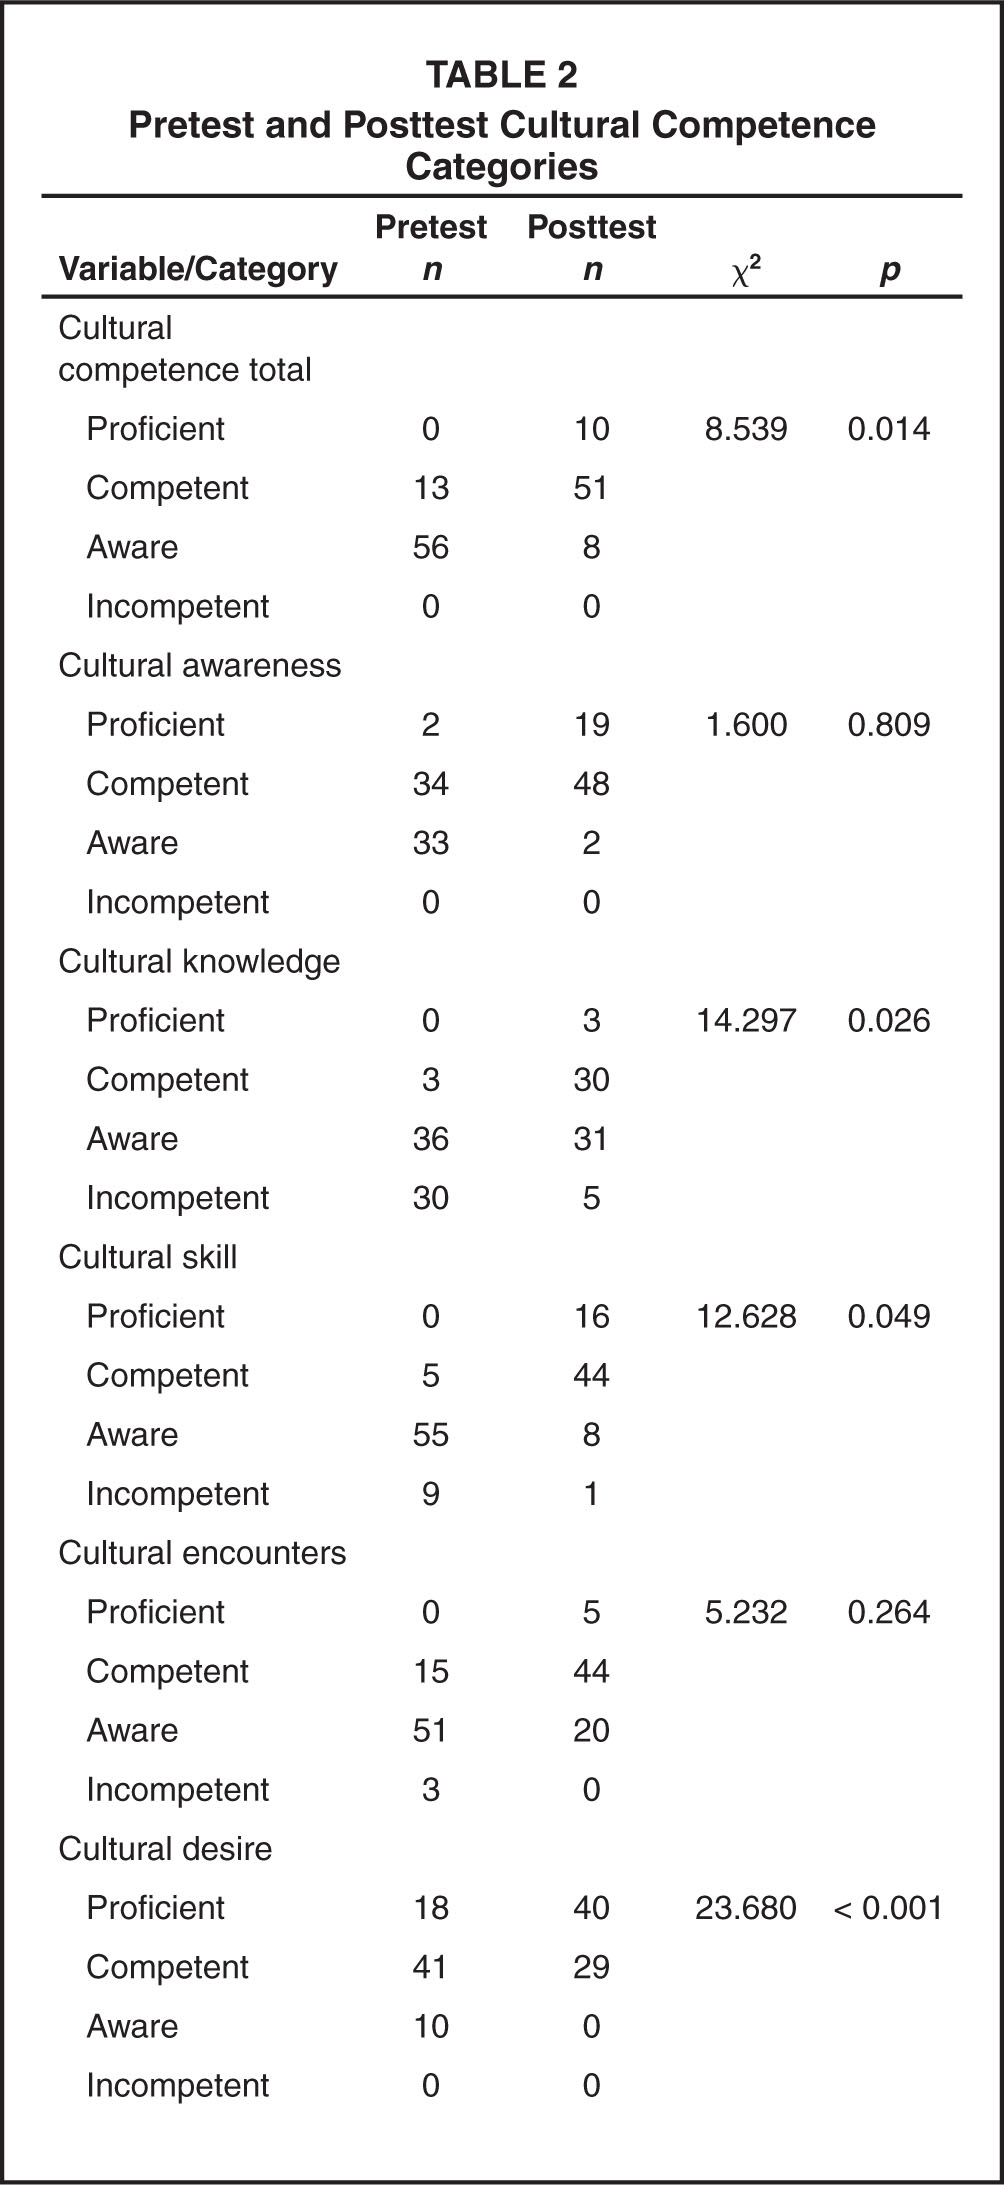 Pretest and Posttest Cultural Competence Categories